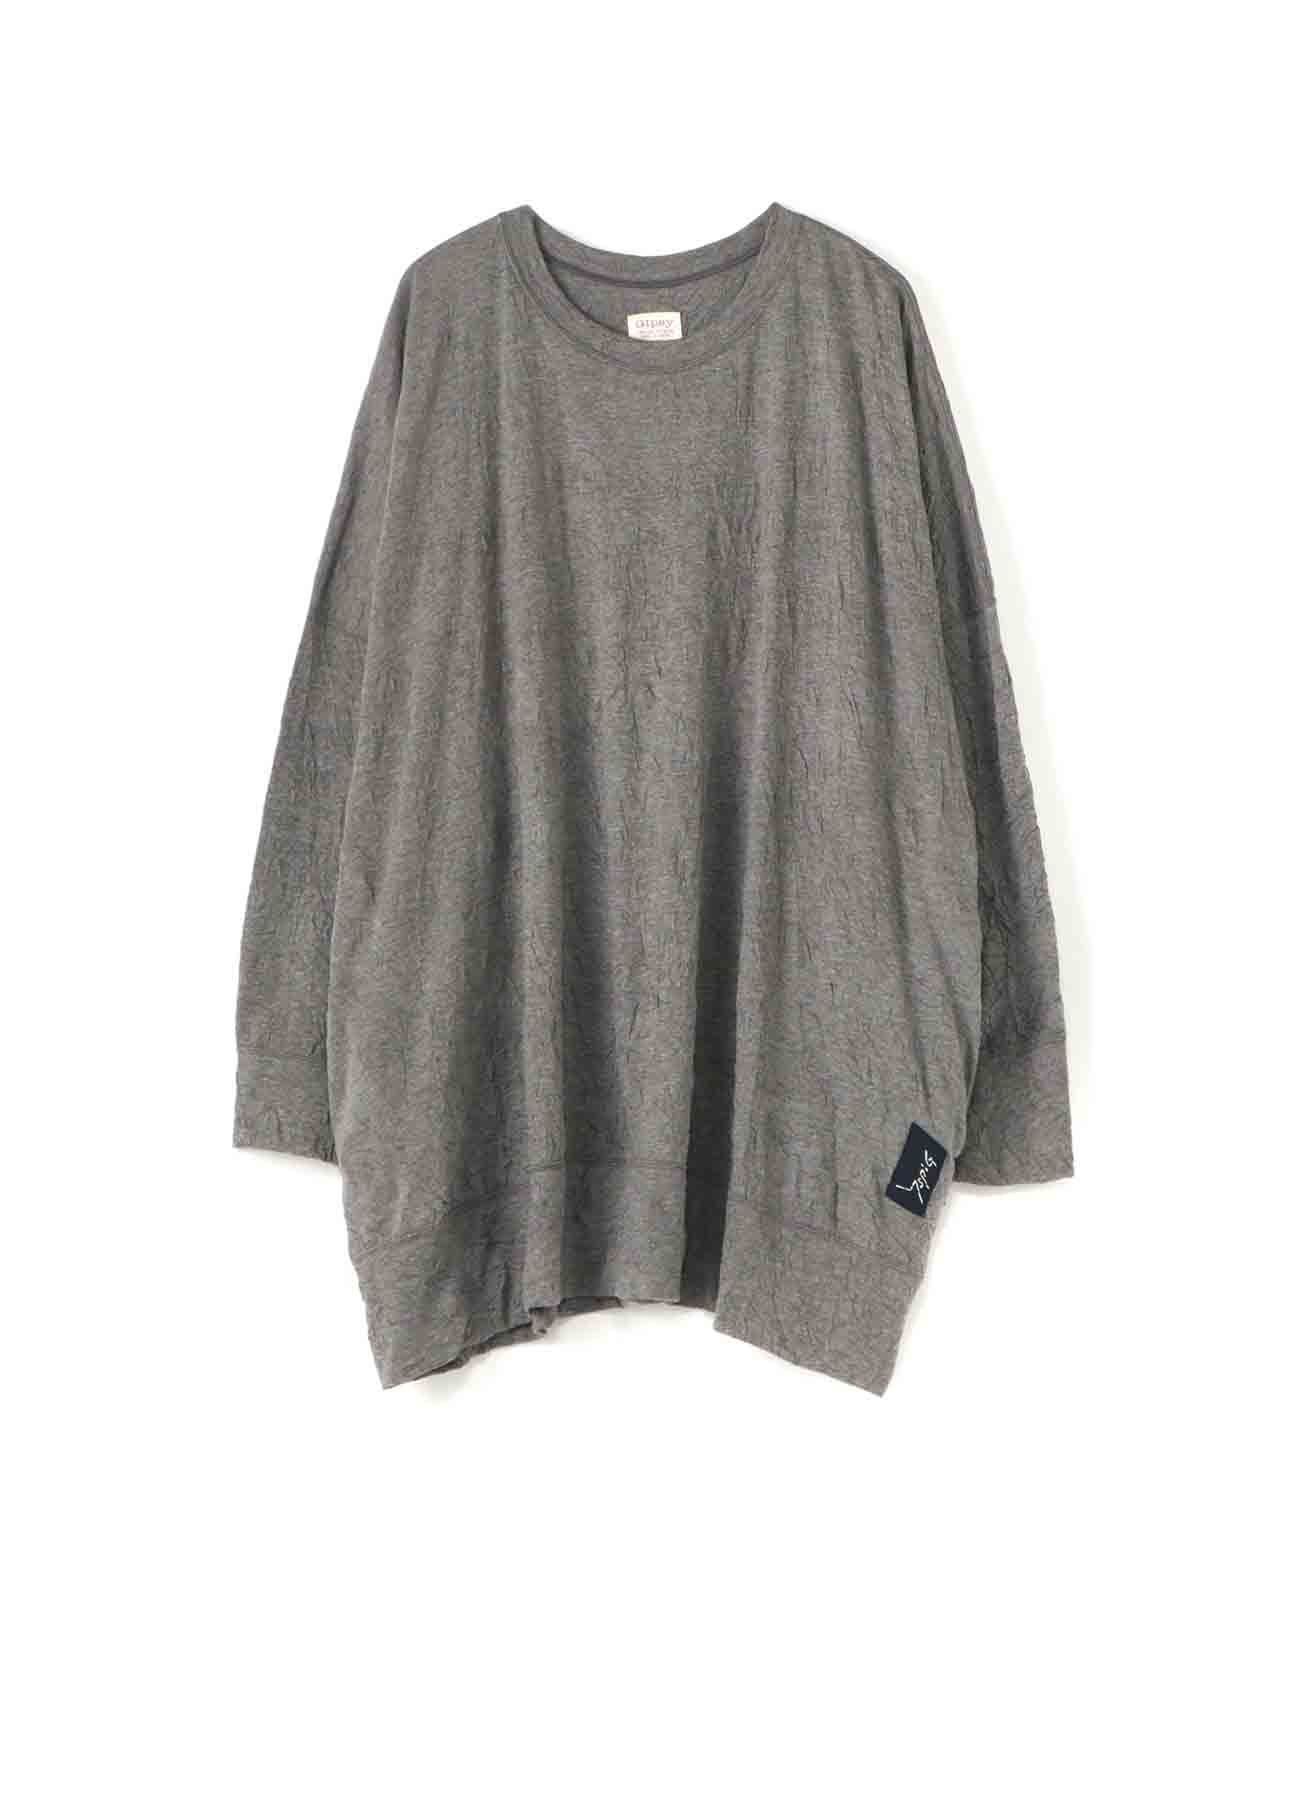 Gipsy COTTON POLYESTER WRINKLE BIG T-SHIRT